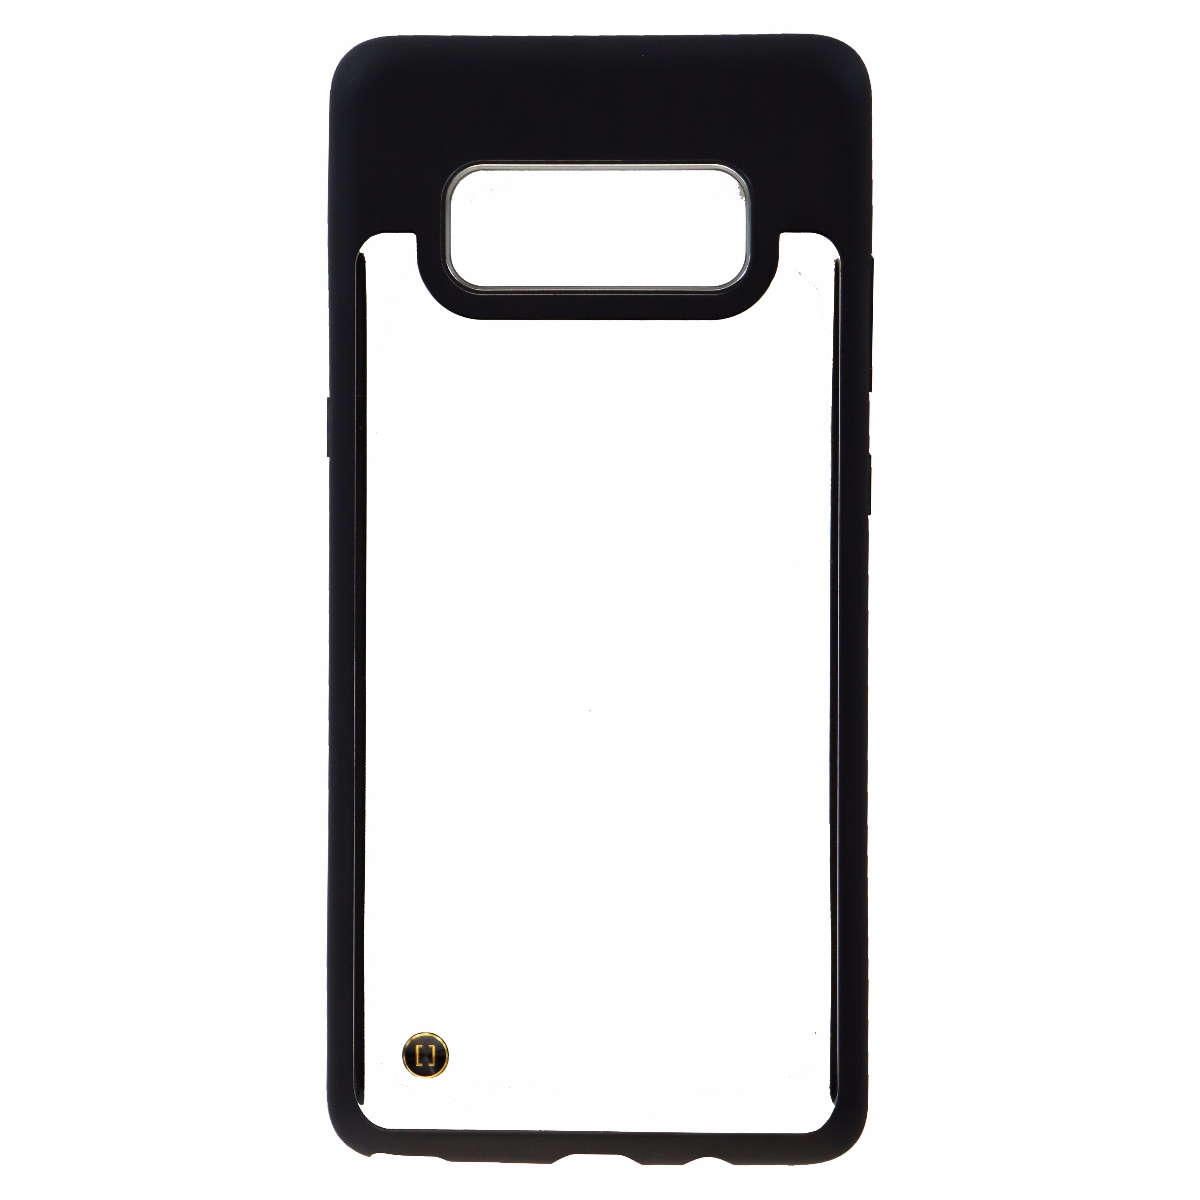 Granite Fitted Protective Case Cover for Galaxy Note 8 - Clear / Black